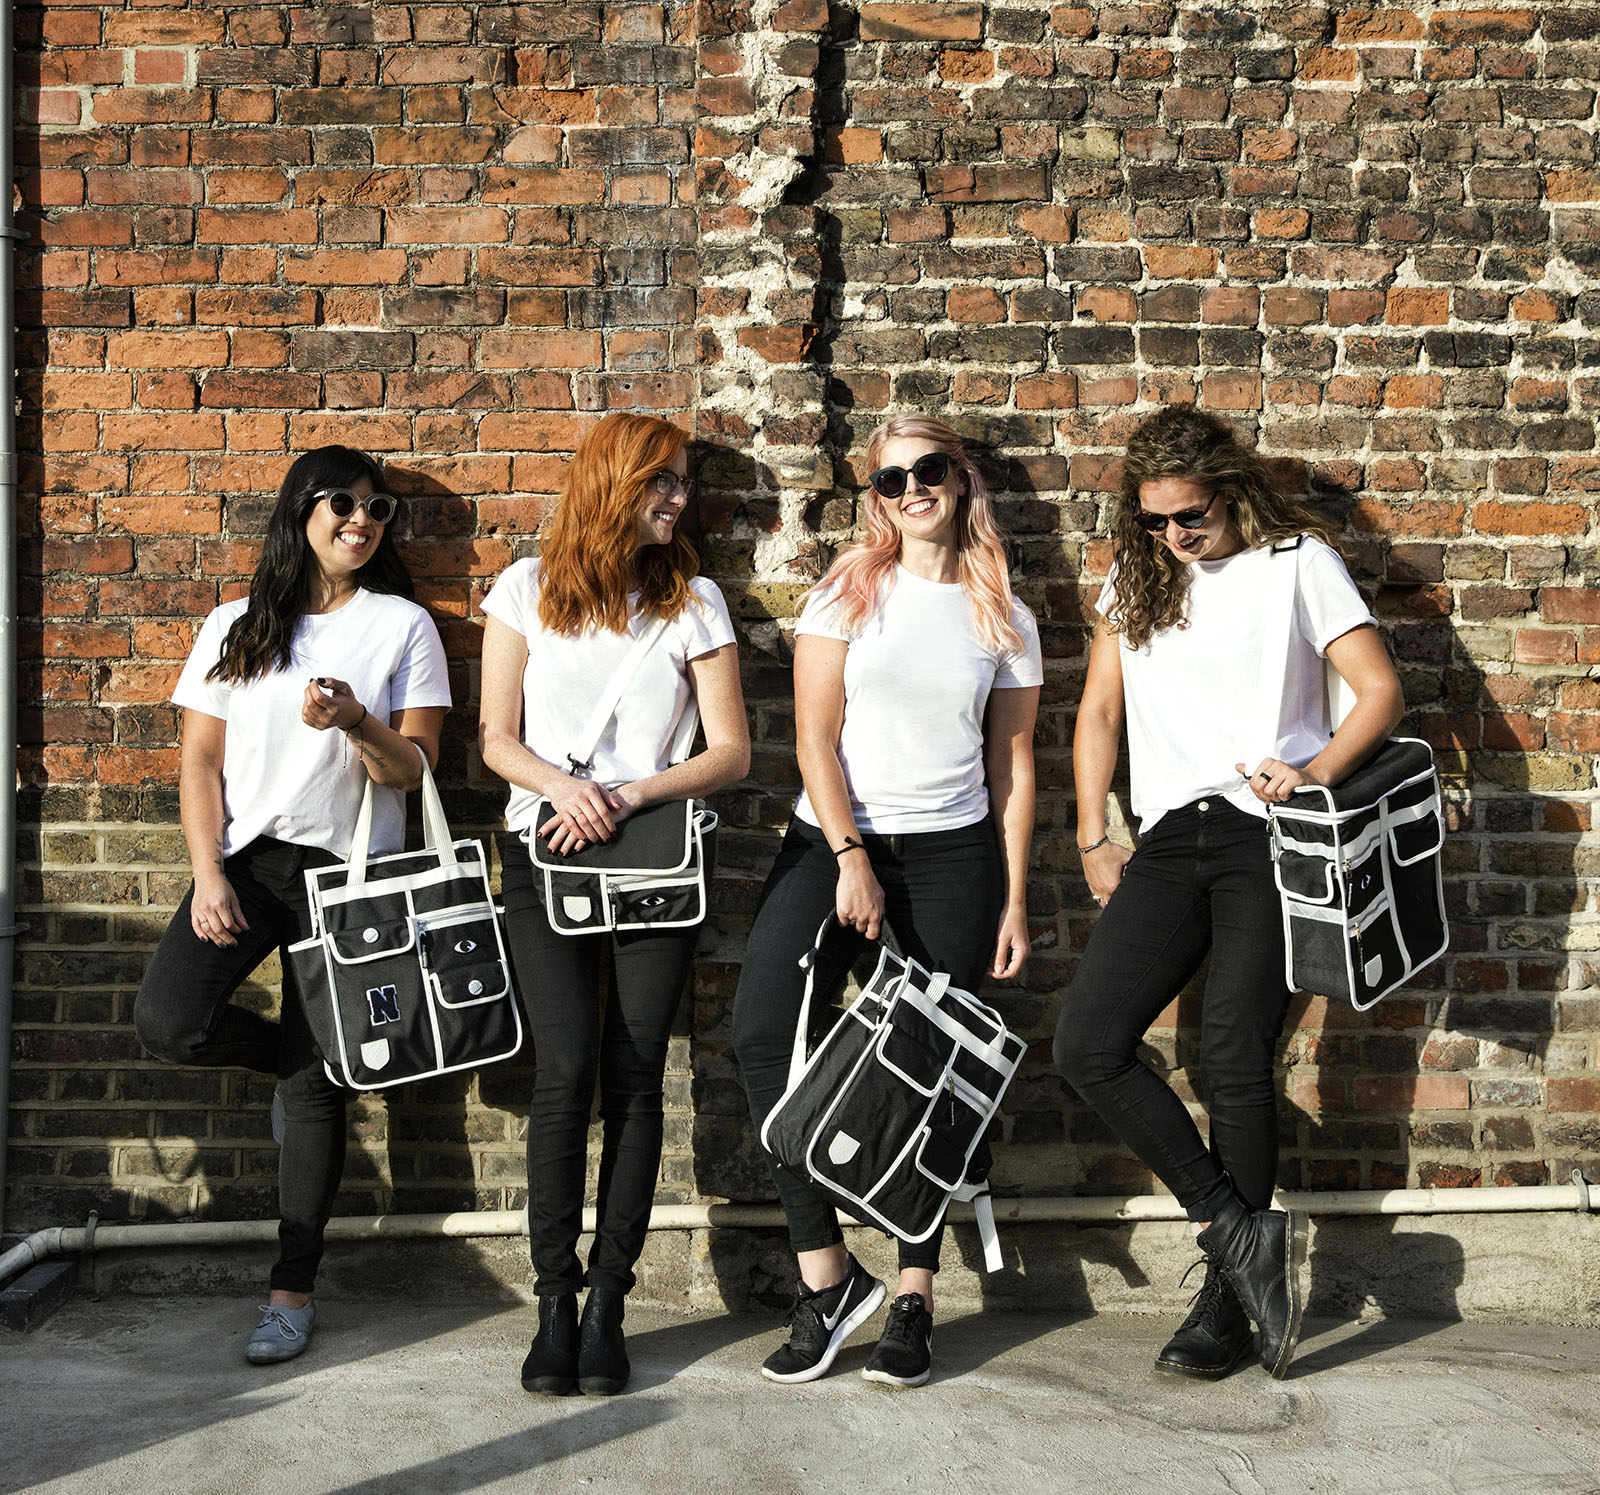 Monochrome pannier bag: The Cycling Store x Goodordering